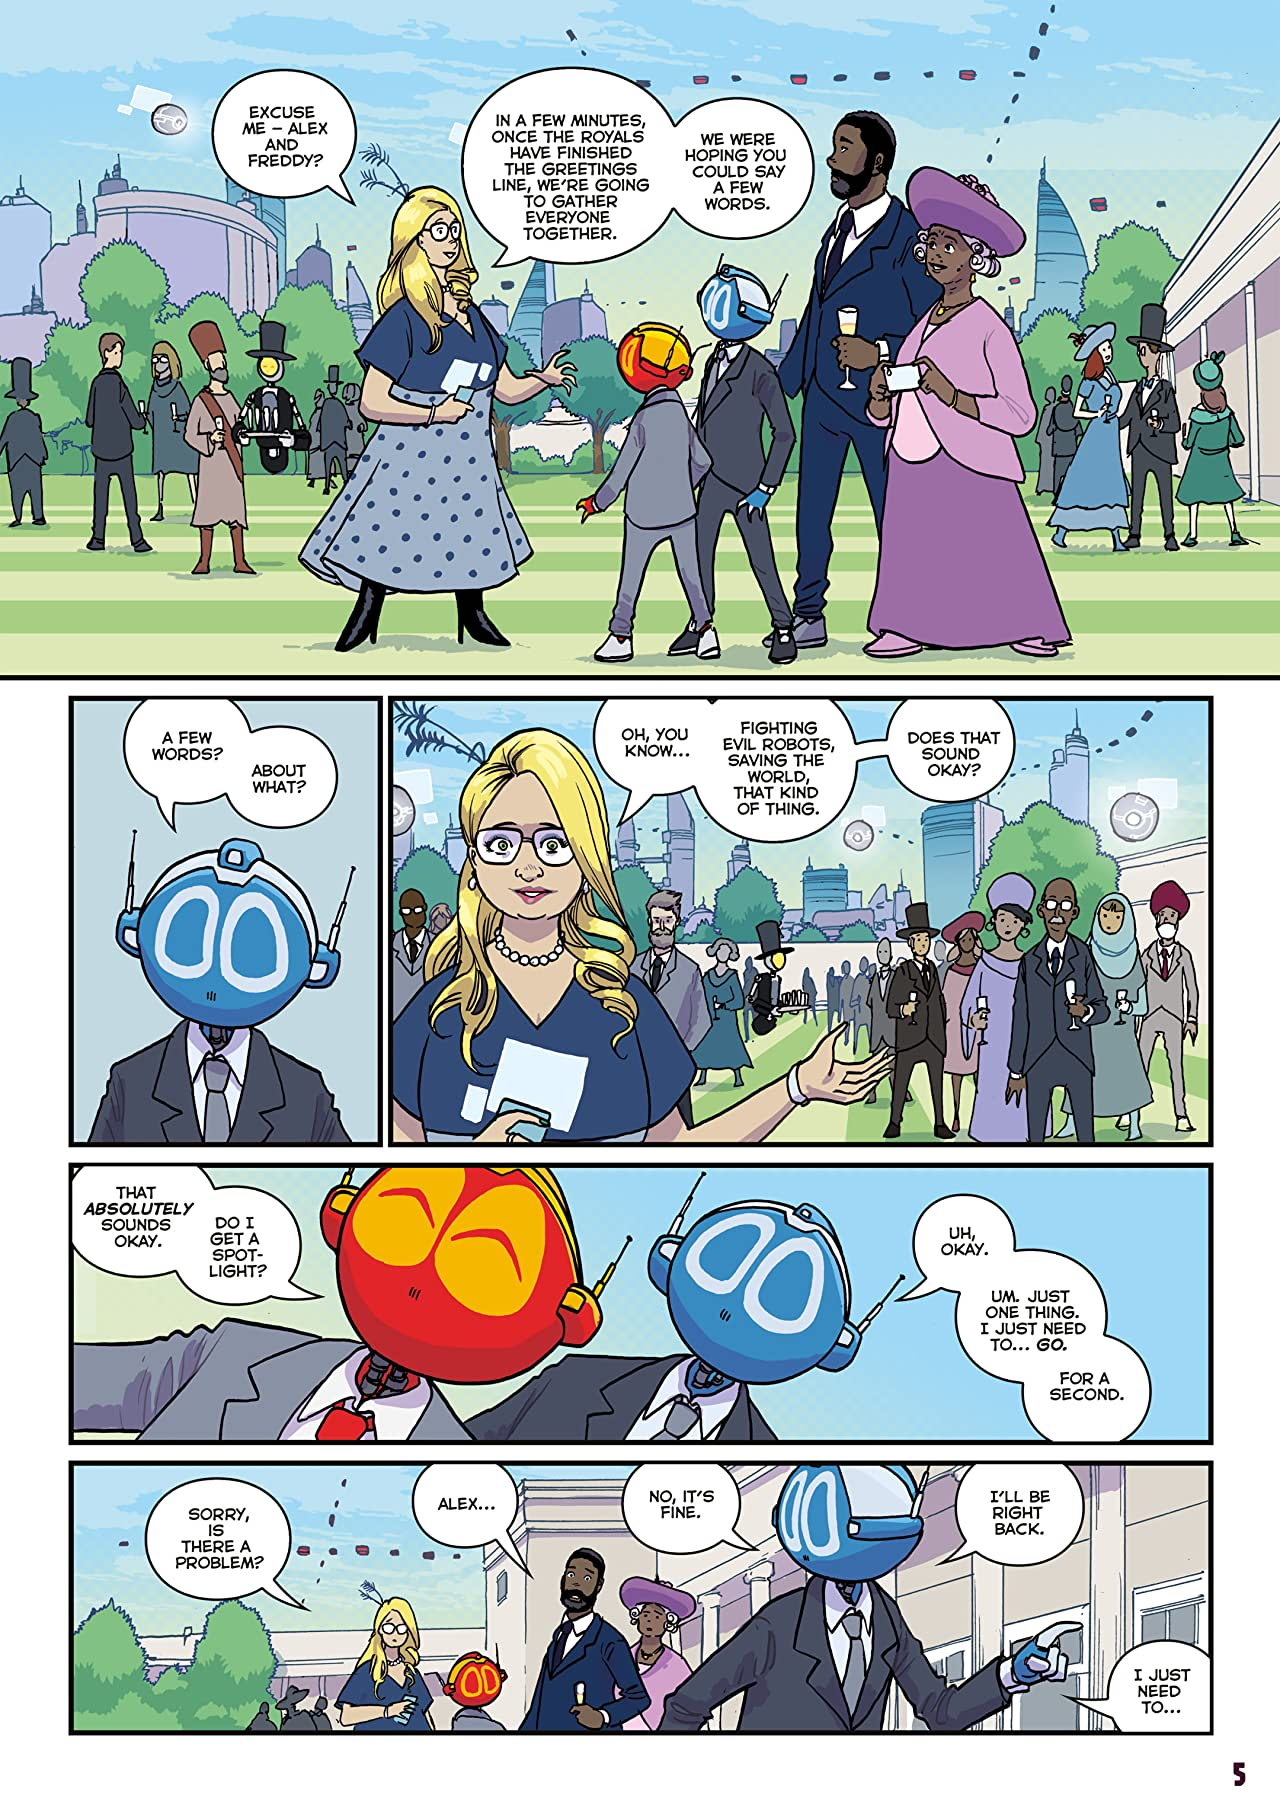 The Phoenix #335: The Weekly Story Comic